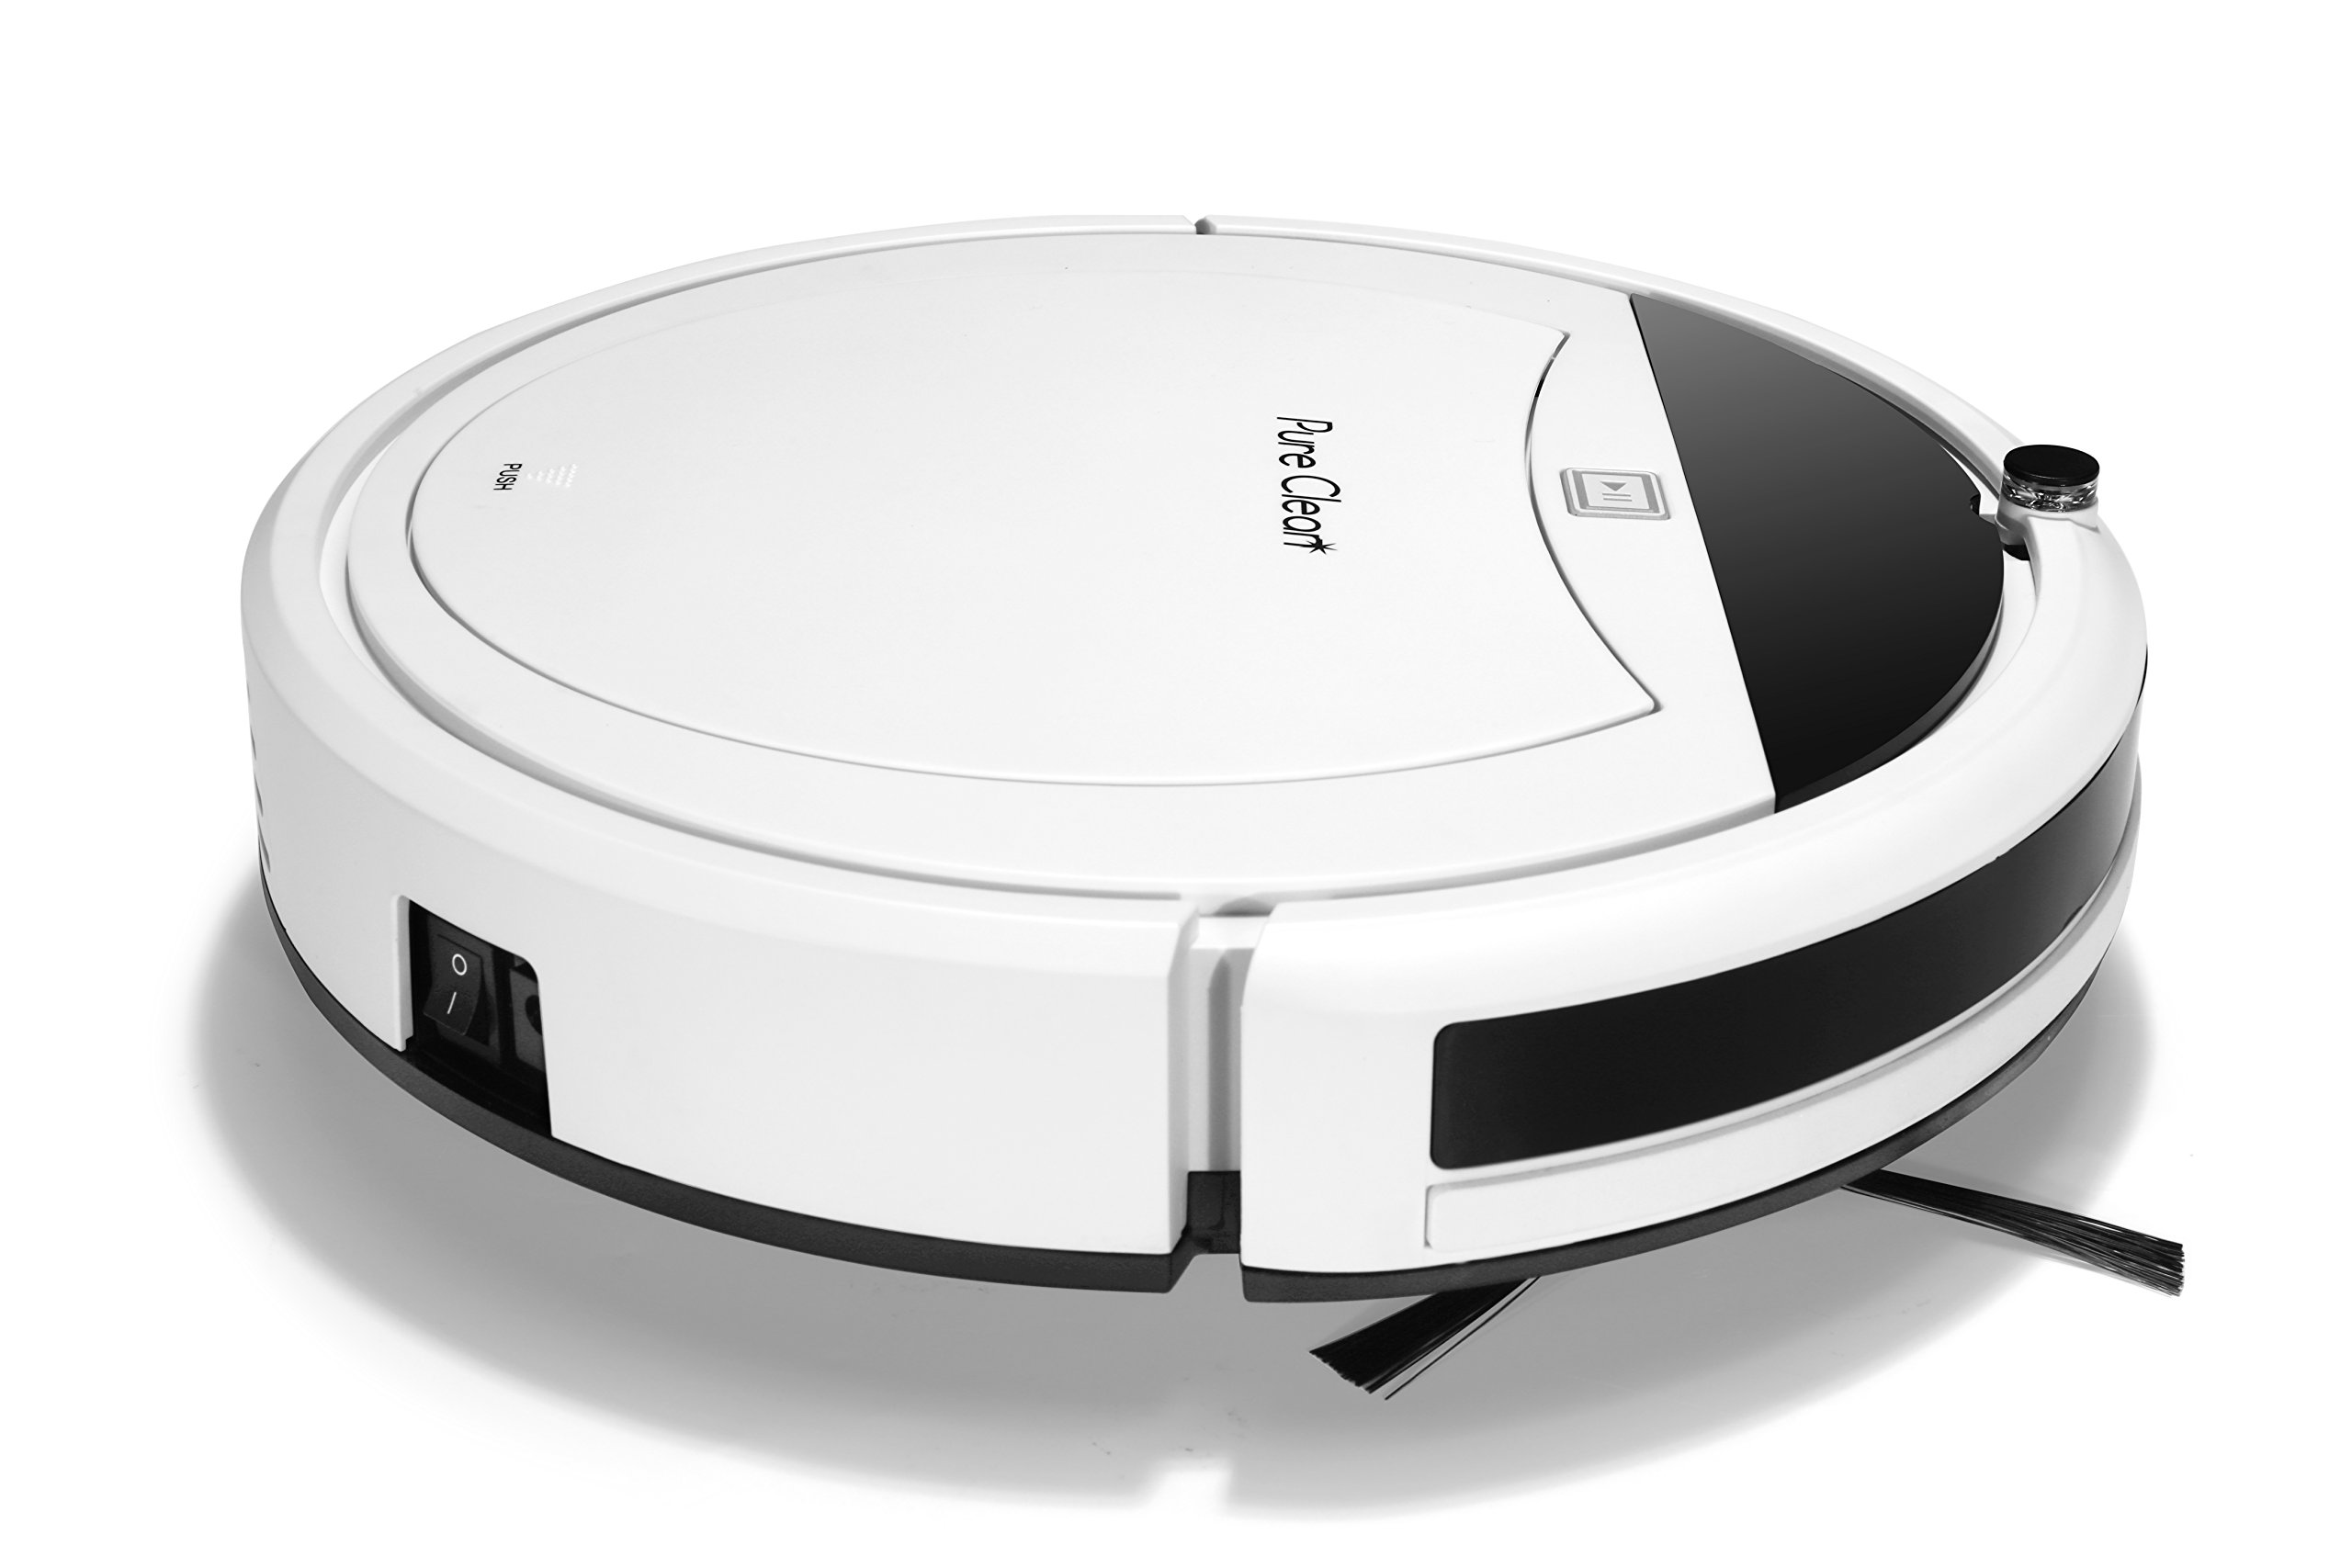 Smart Programmable Robot Vacuum Cleaner - Gyro Sensor Home Navigation, Scheduled Activation & Automatic Charge Dock - Robotic Auto Cleaning for Carpet Hardwood Floor - PureClean PUCRC105_0 by PURE CLEAN